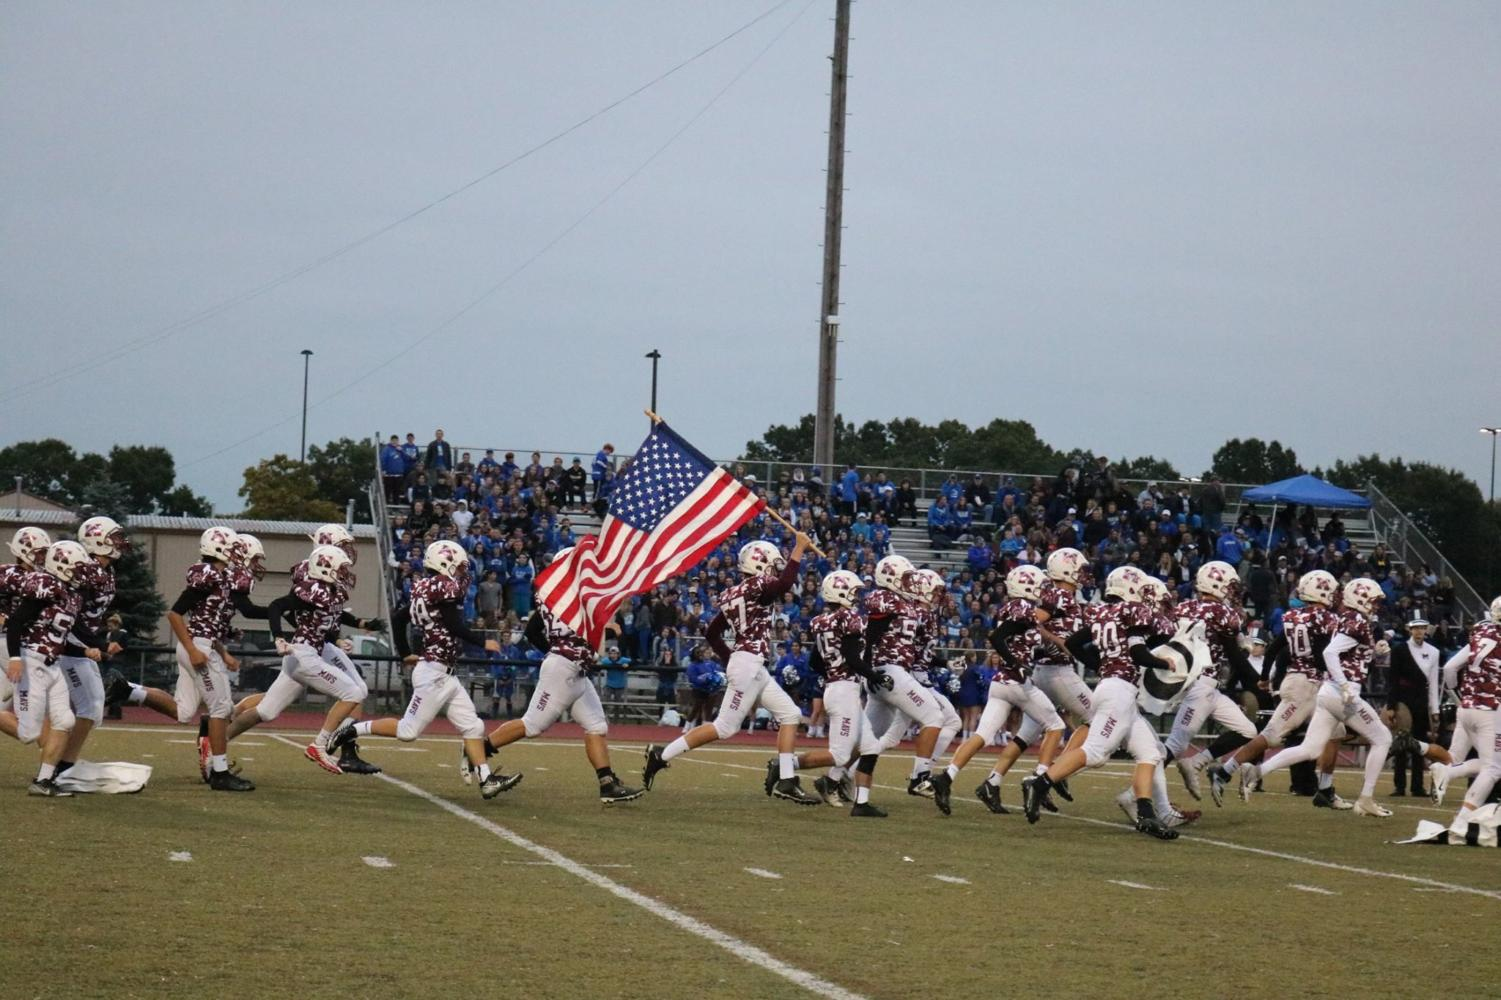 The Varsity Football Team runs onto the field Lead by Jake Miller holding up the flag. (All photos courtesy of Jerry Rea)